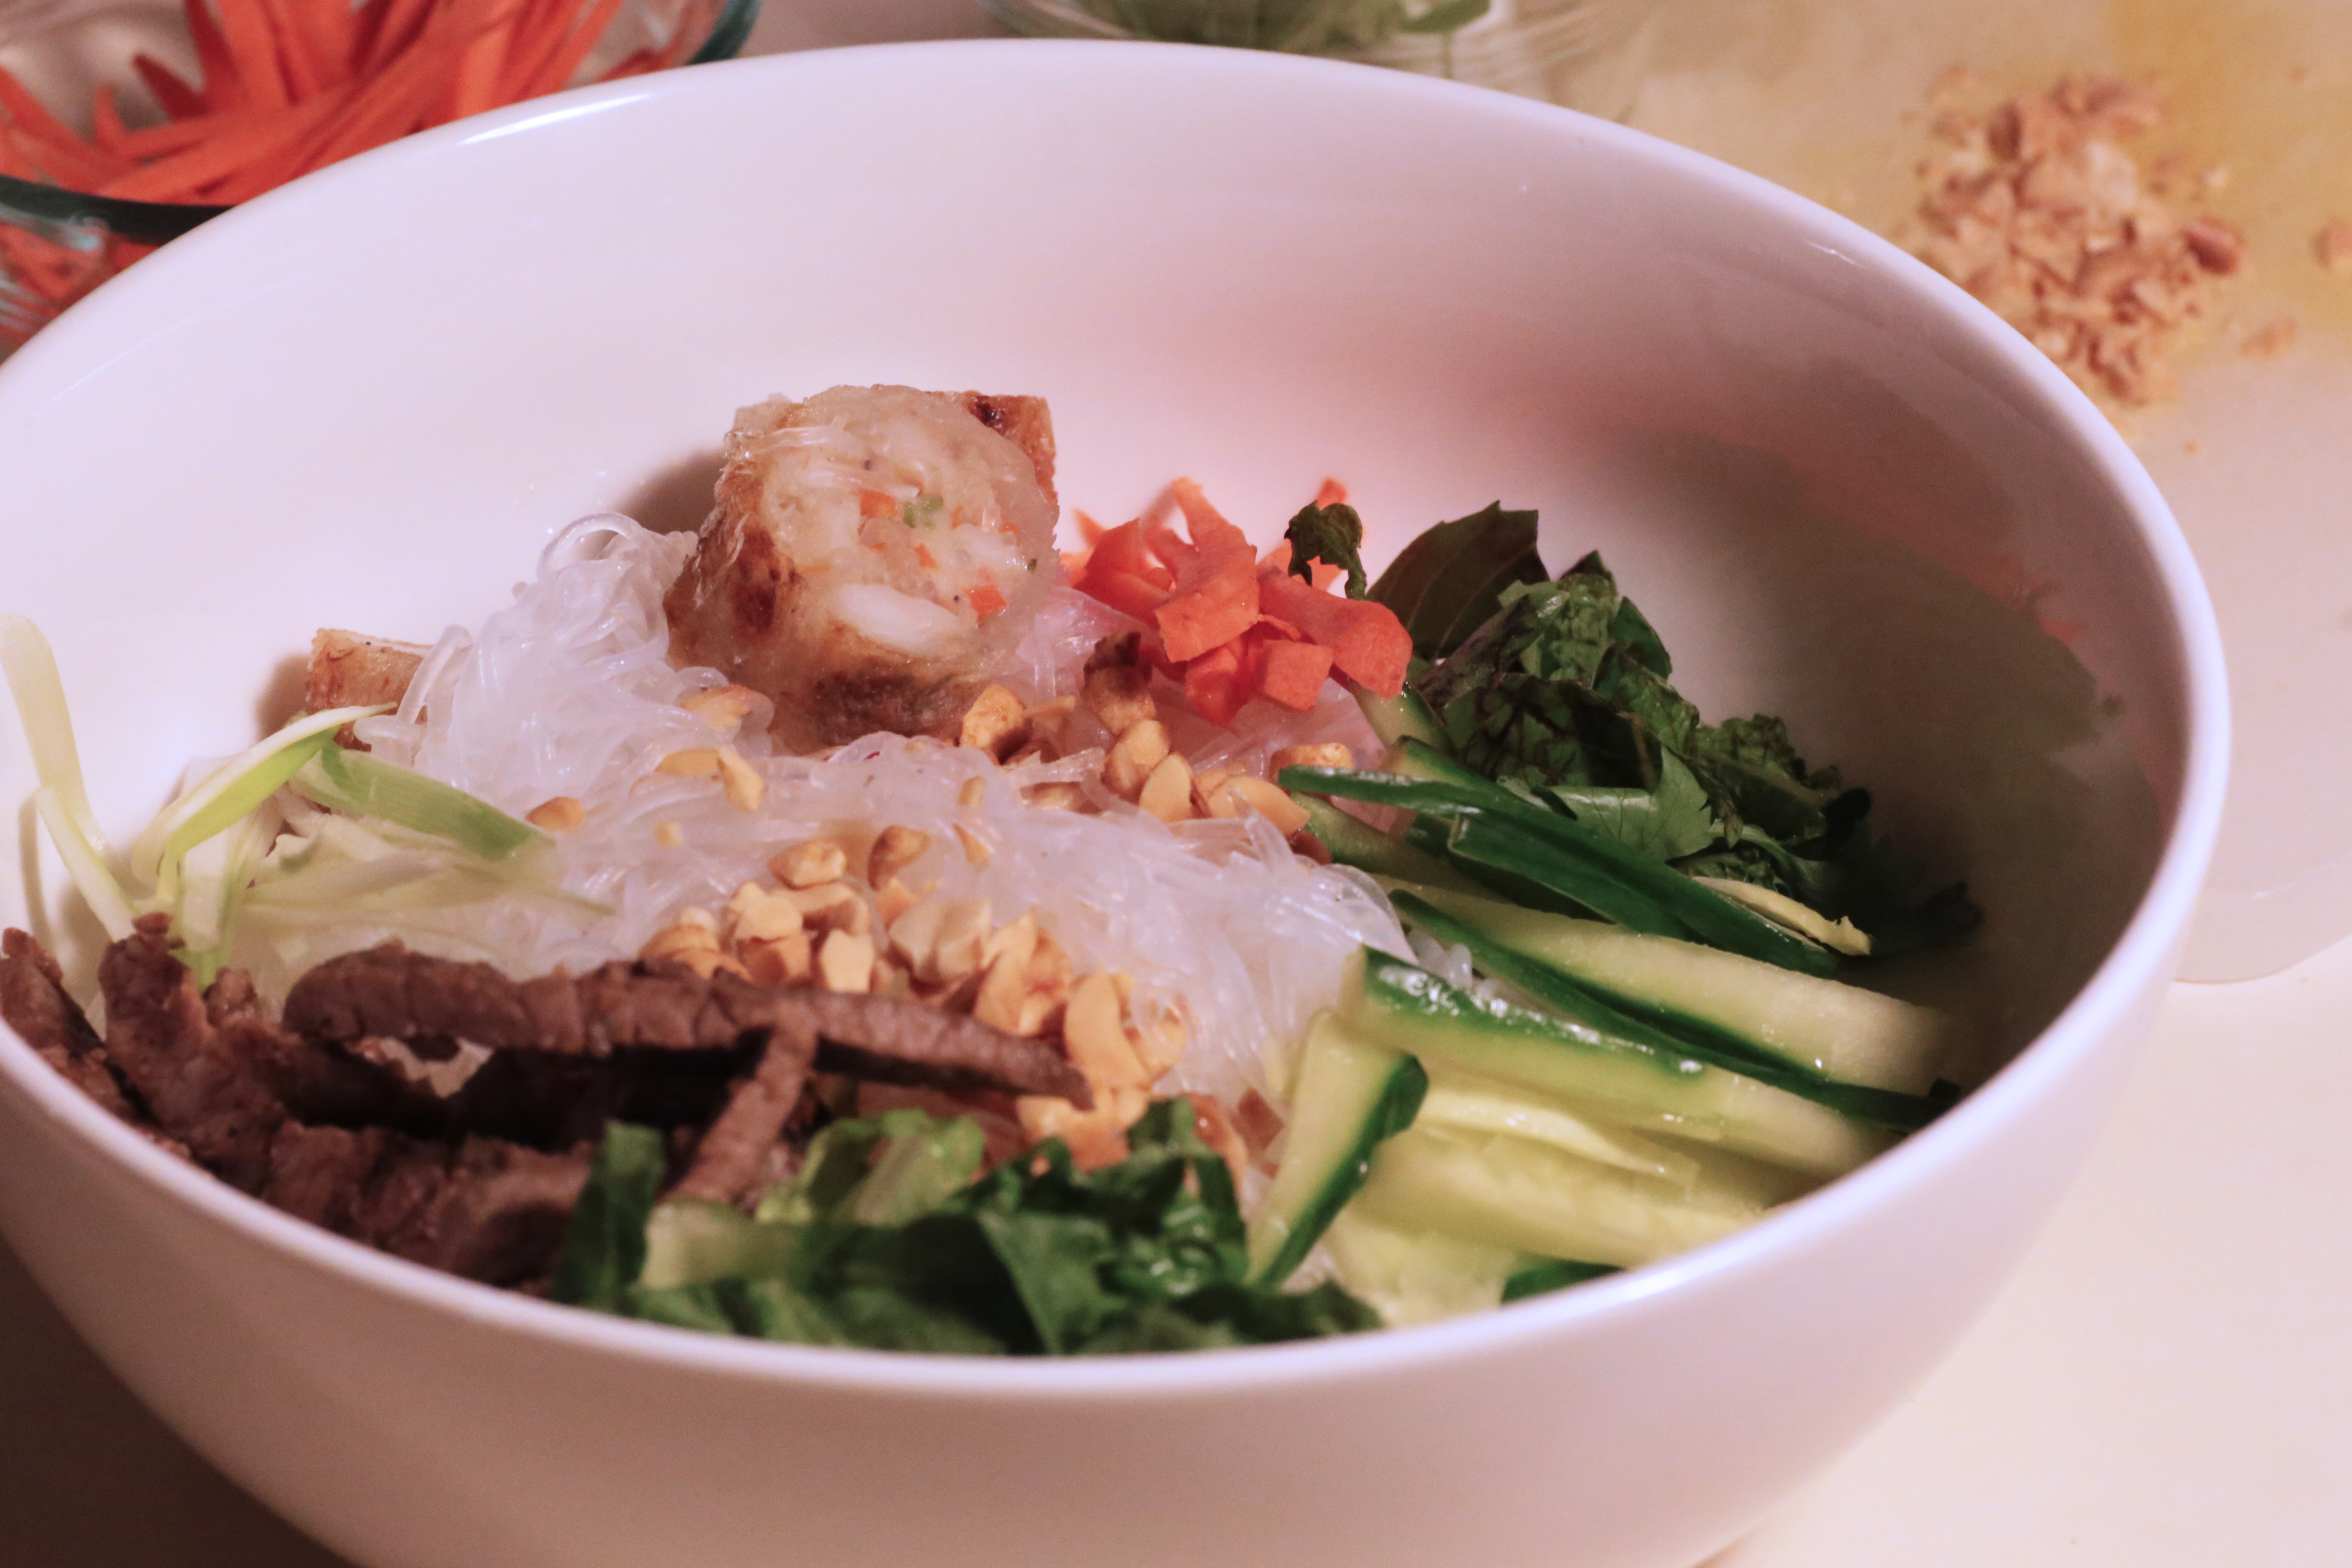 rice noodles are served with an assortment of chopped vegetables ...